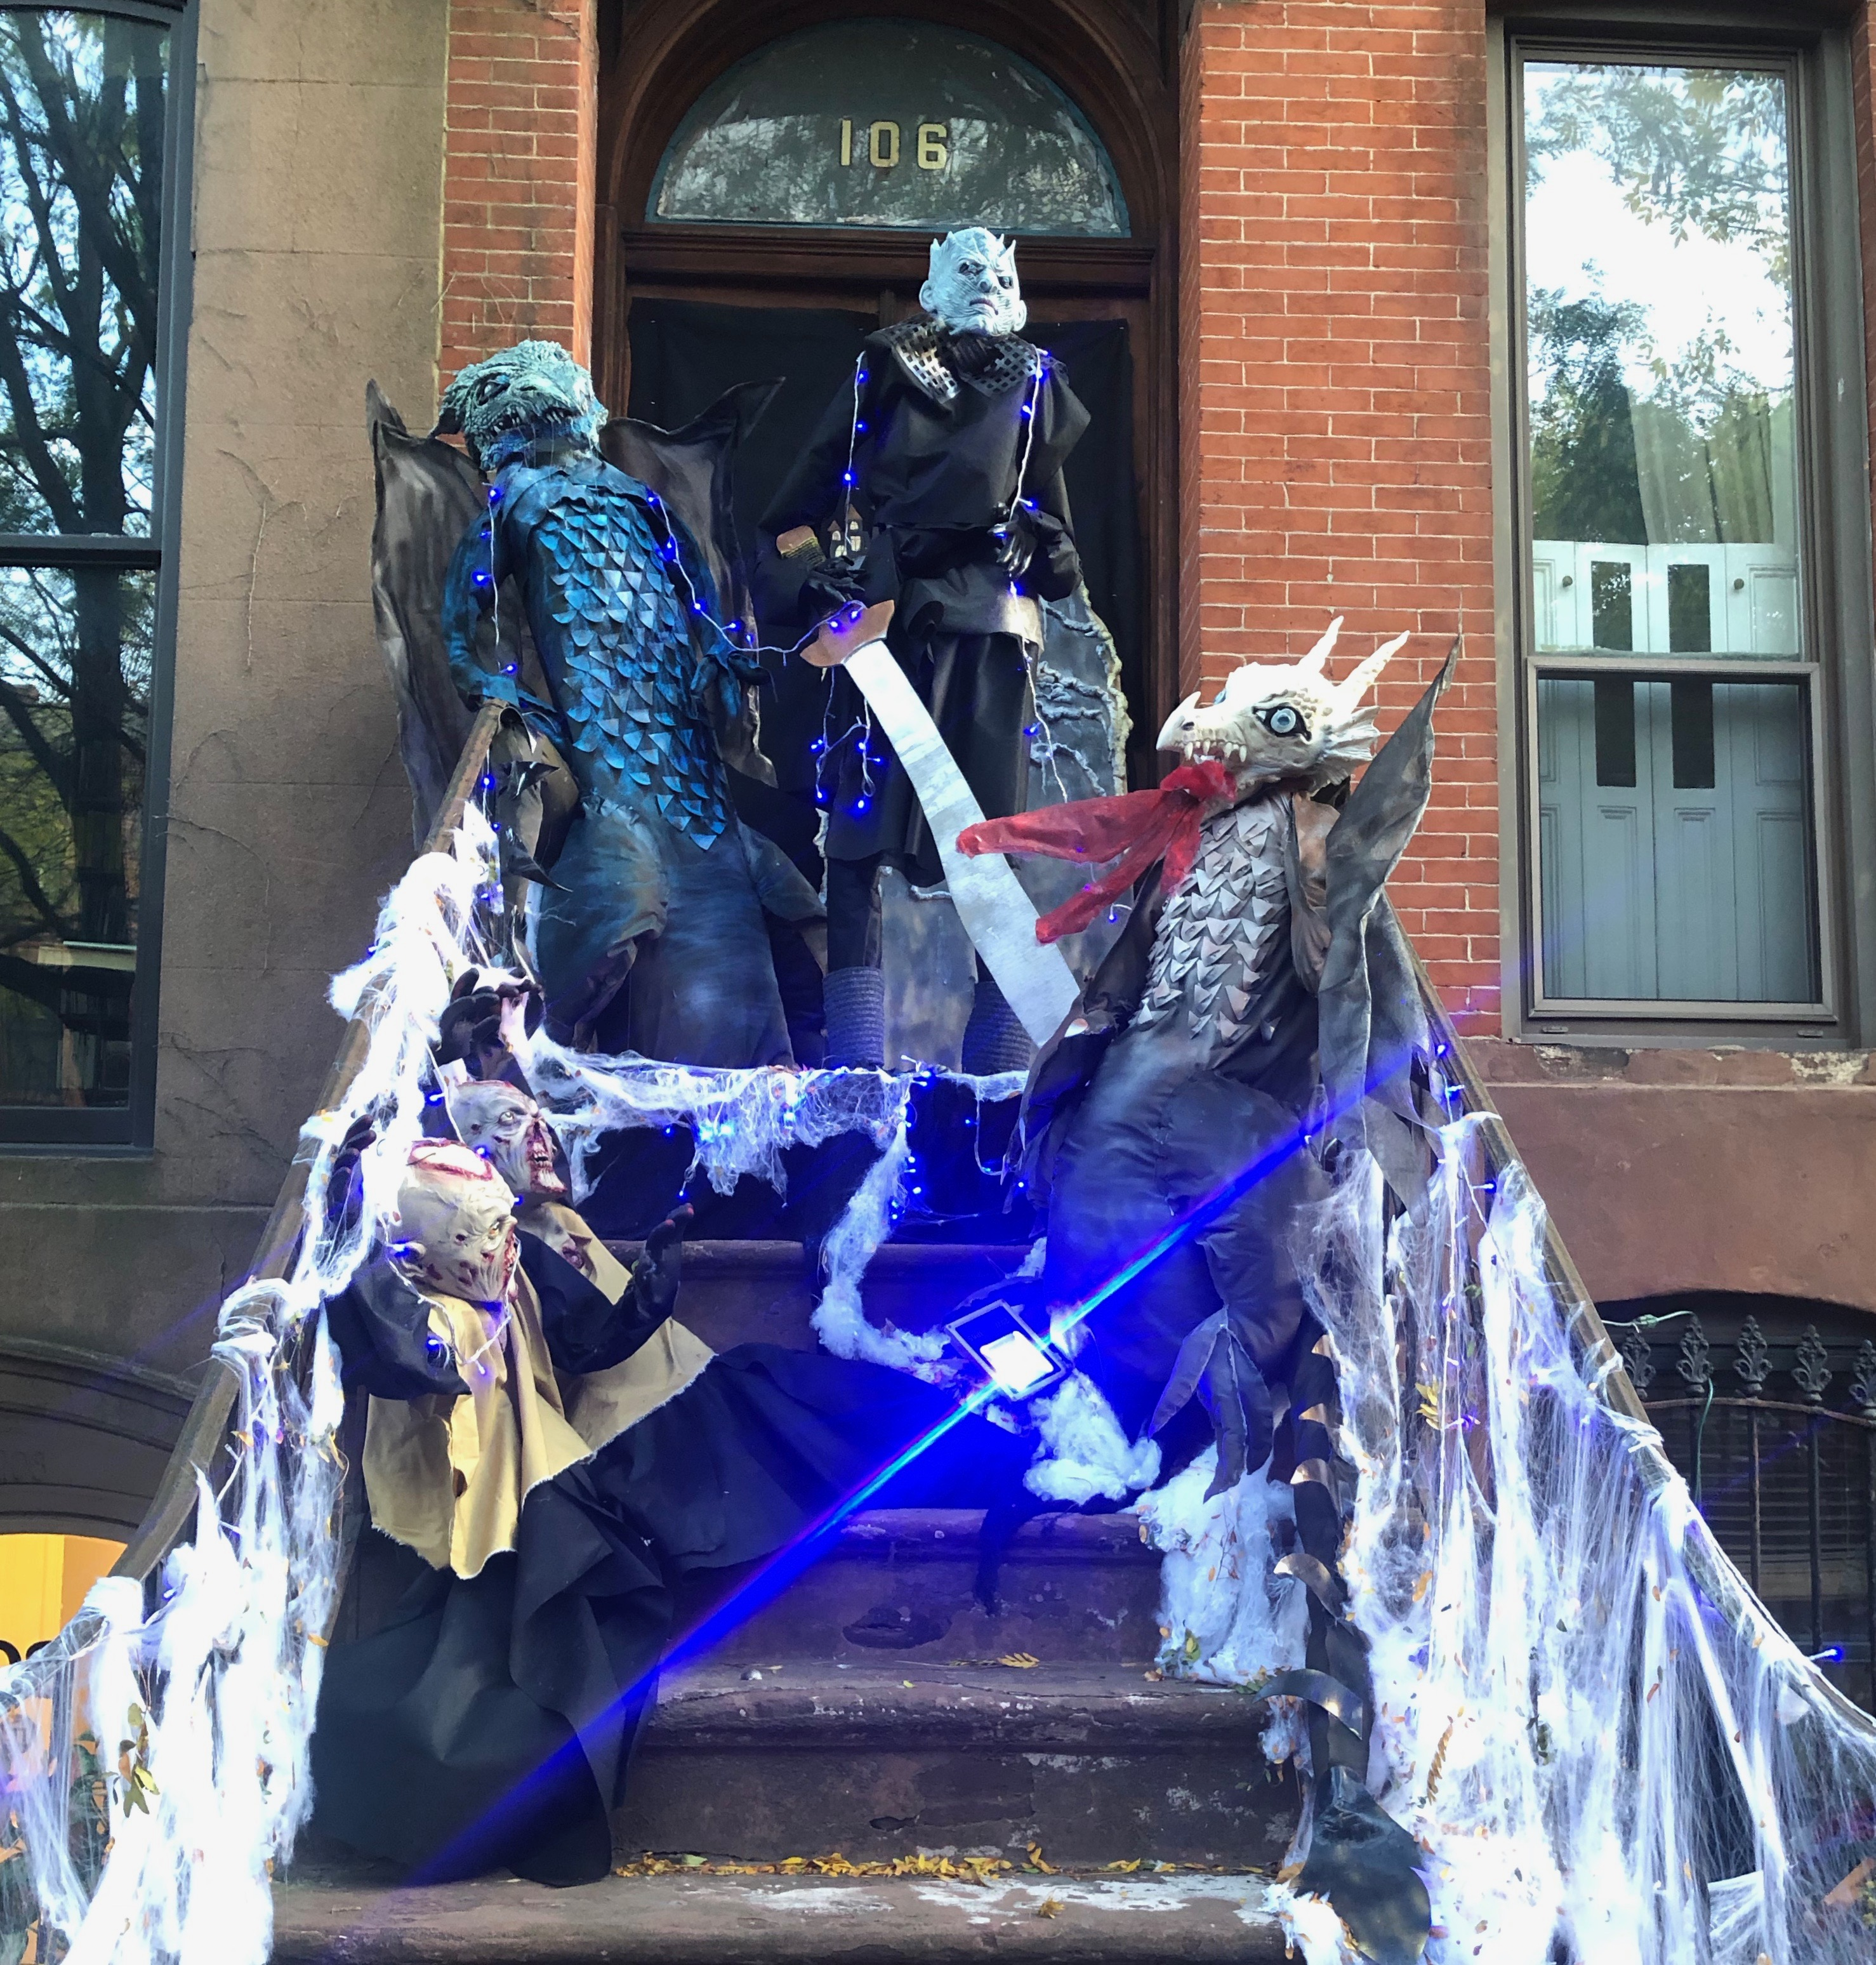 halloween, trick or treat, events, holidays, nyc neighborhoods